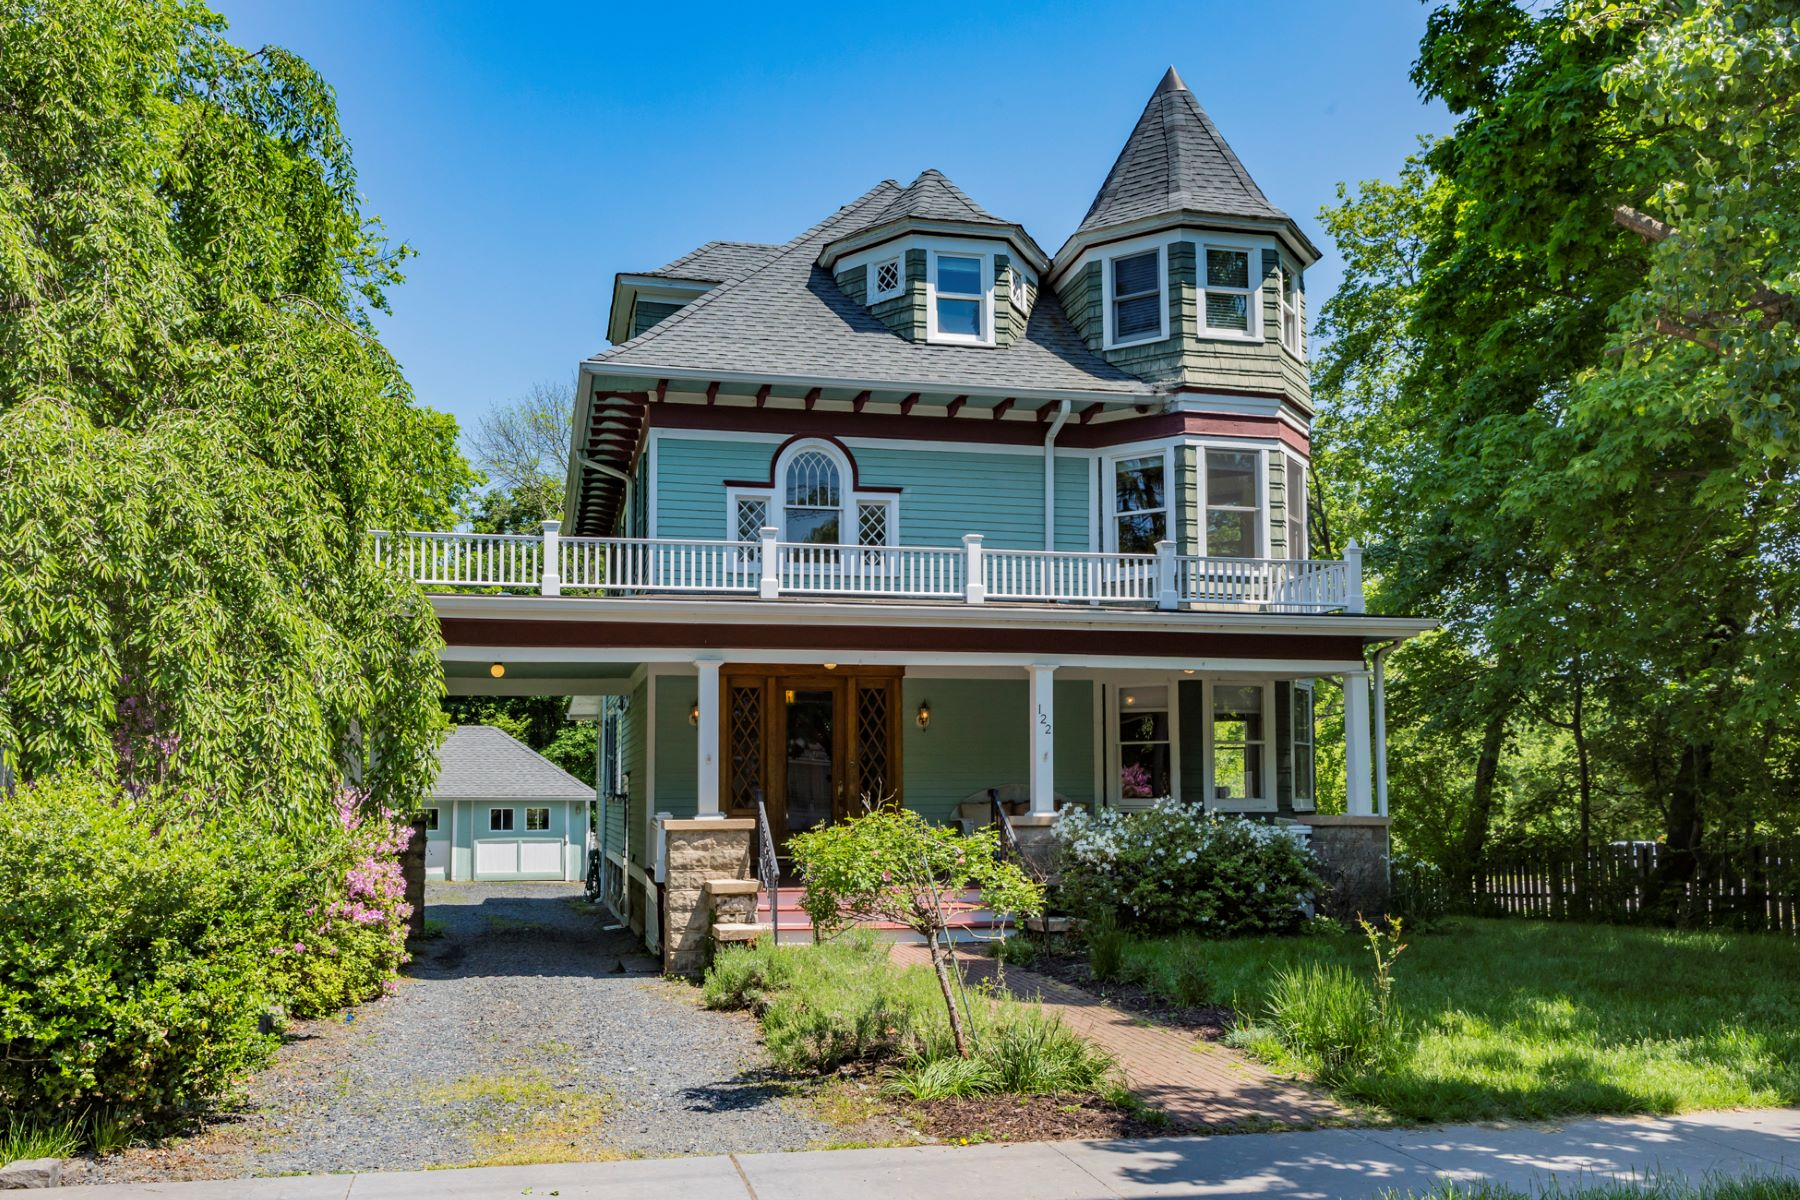 Single Family Home for Sale at Handsome Victorian in Rocky Hill 122 Washington Street, Rocky Hill, New Jersey 08553 United StatesMunicipality: Rocky Hill Borough